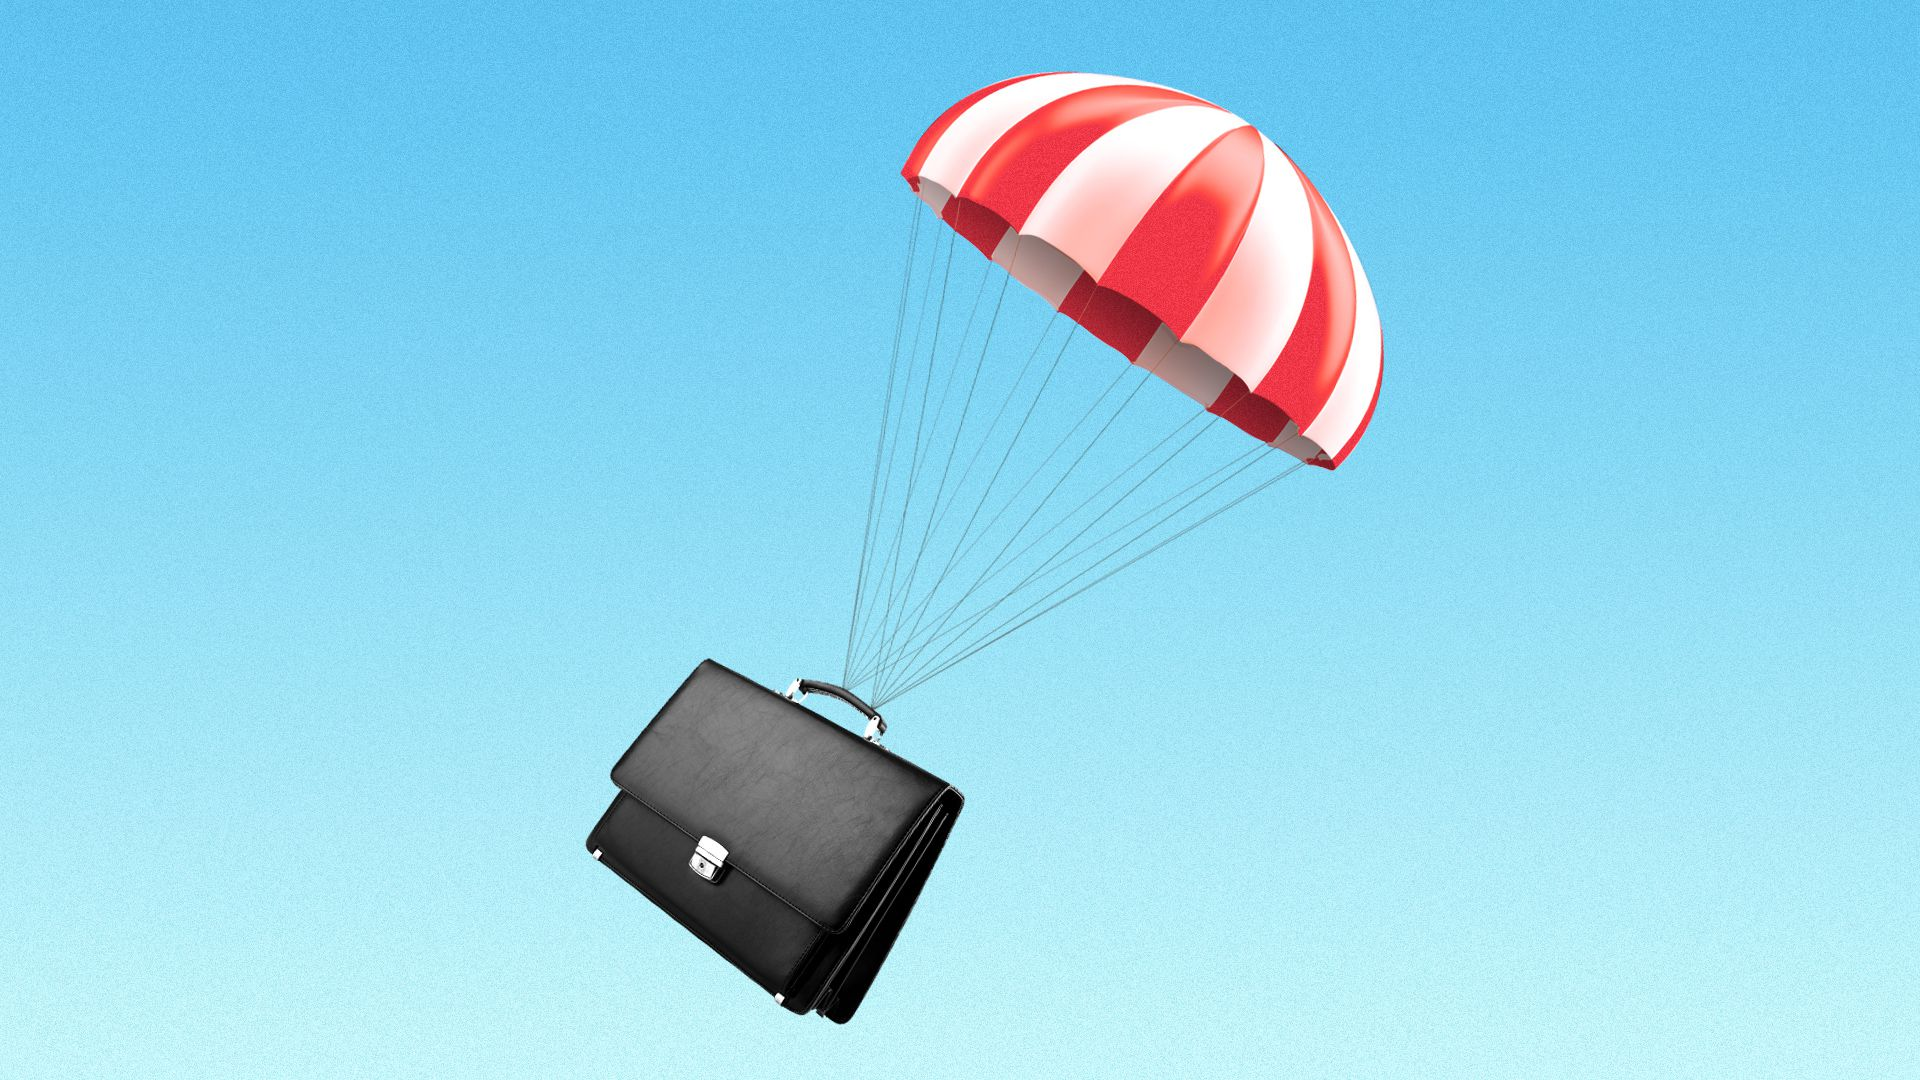 Illustration of a parachute with a briefcase.